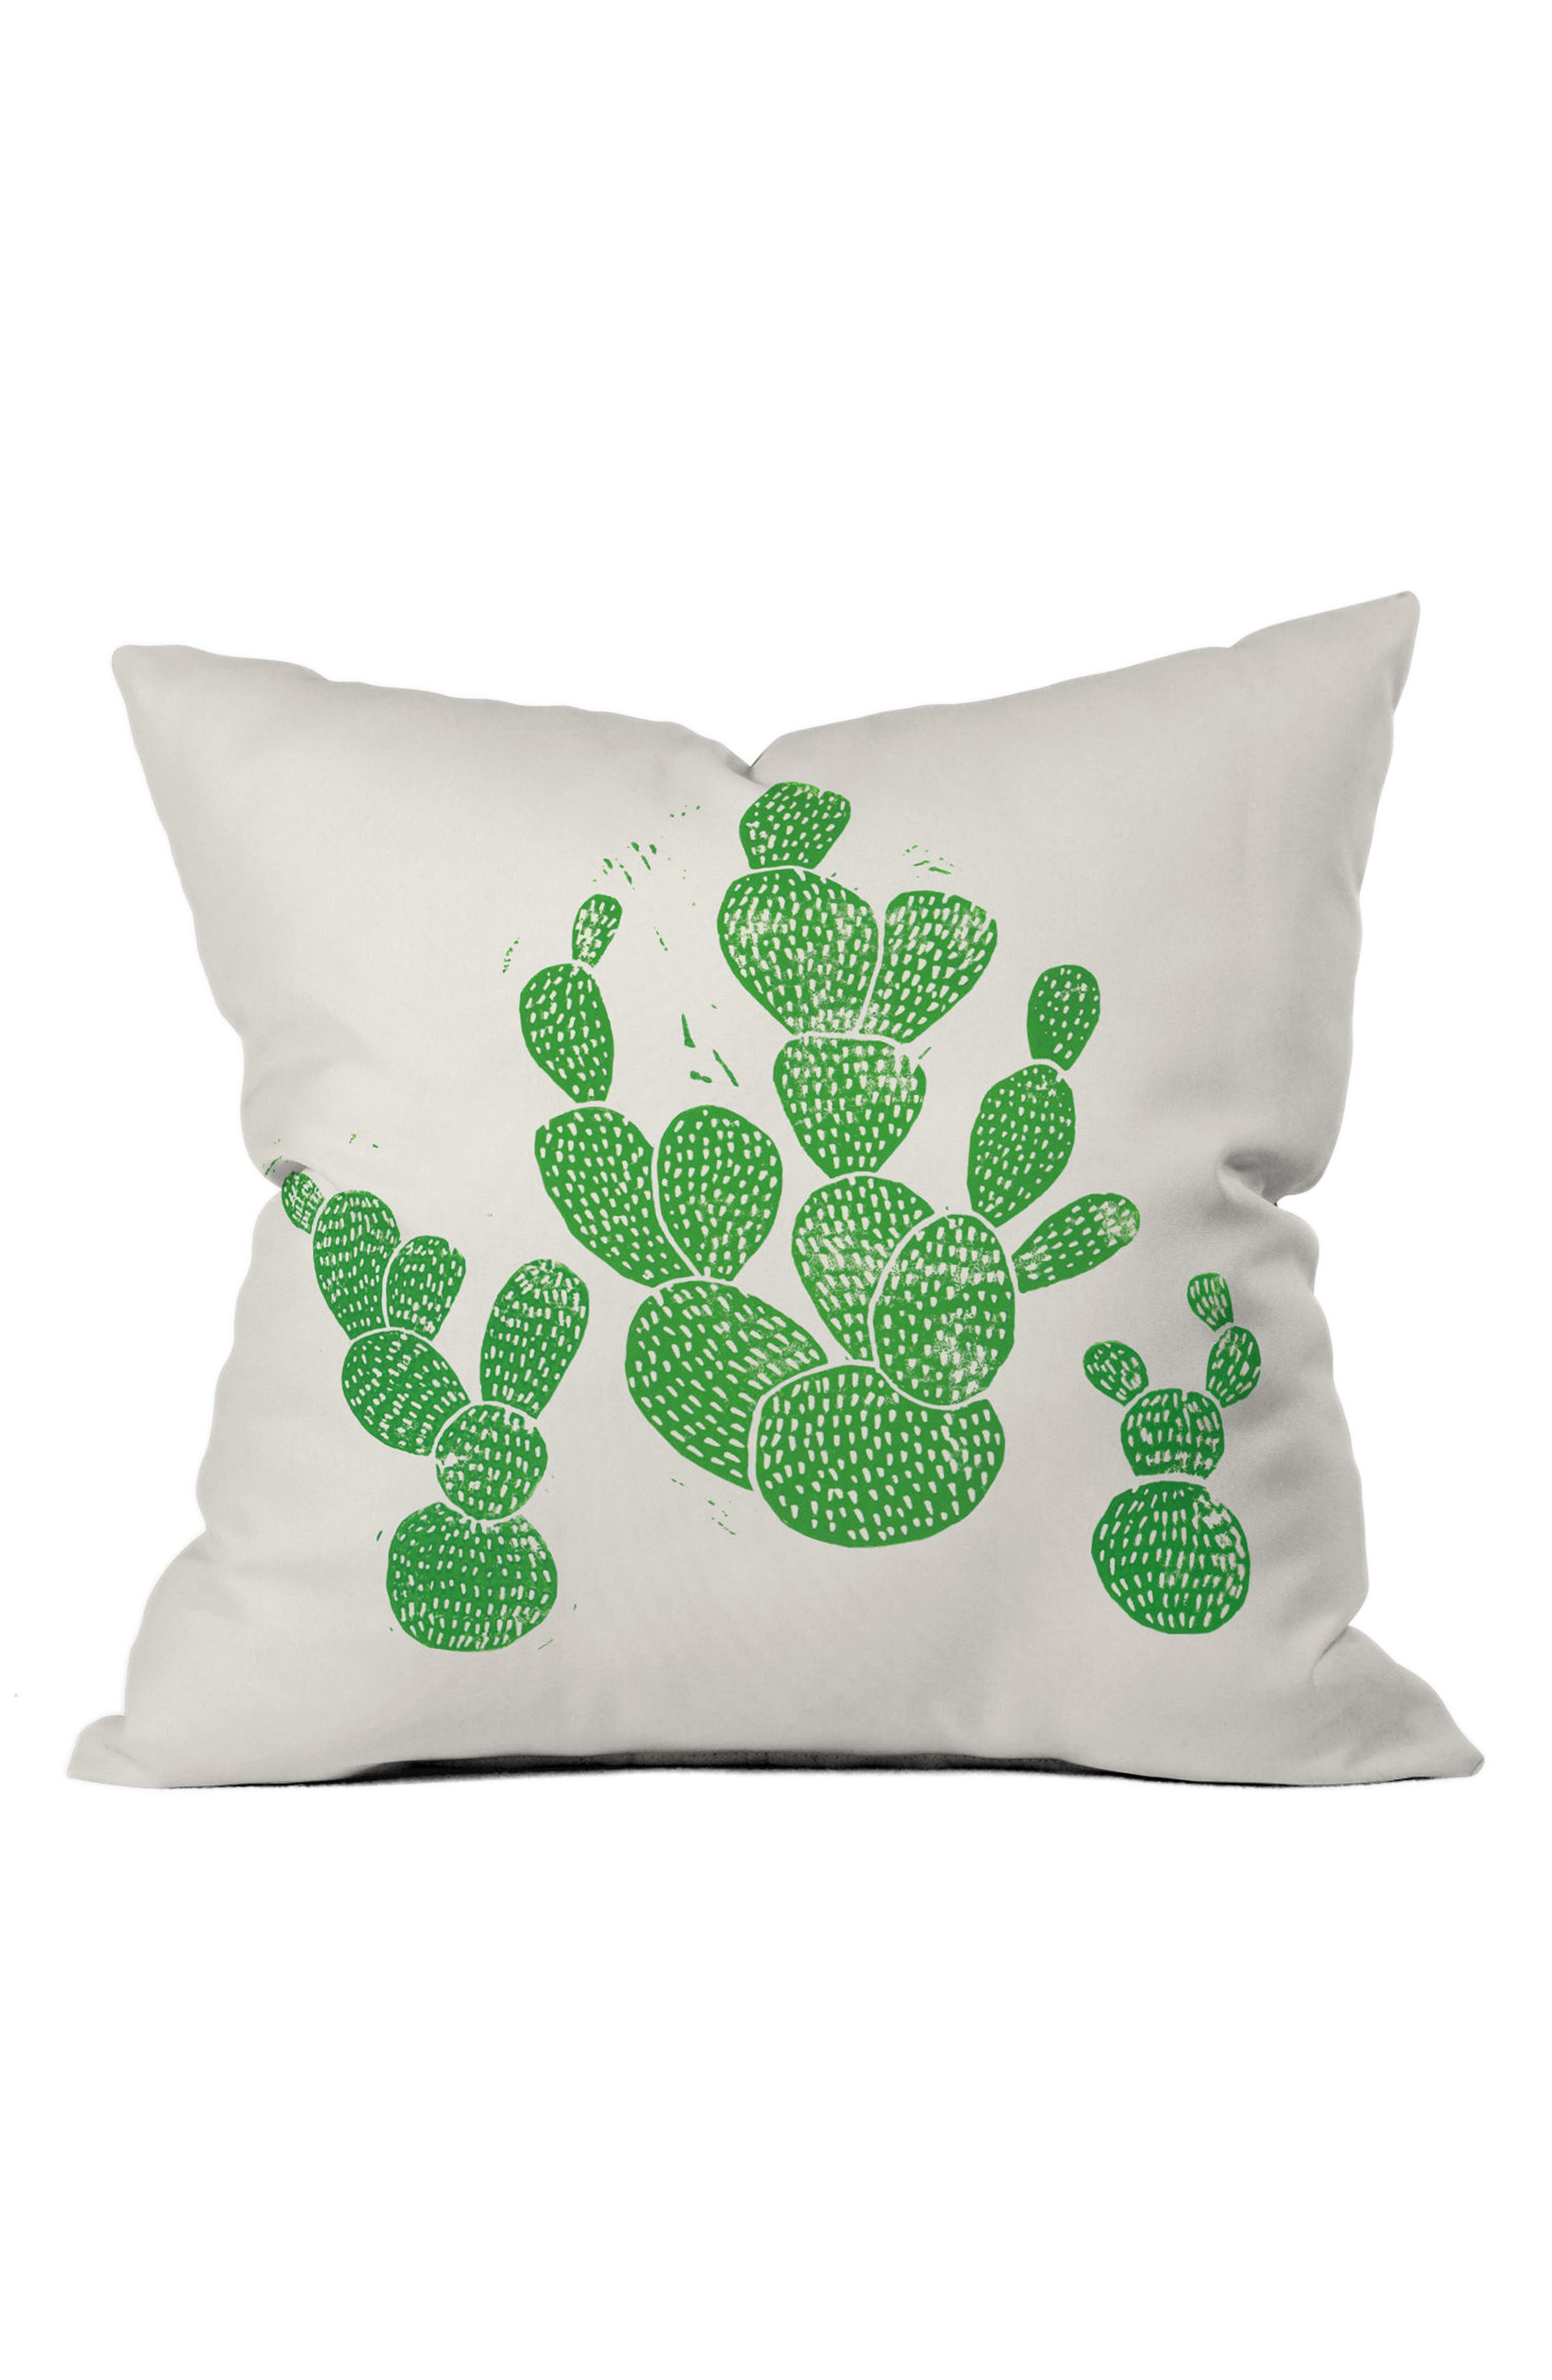 Alternate Image 1 Selected - DENY Designs Green Cacti Pillow